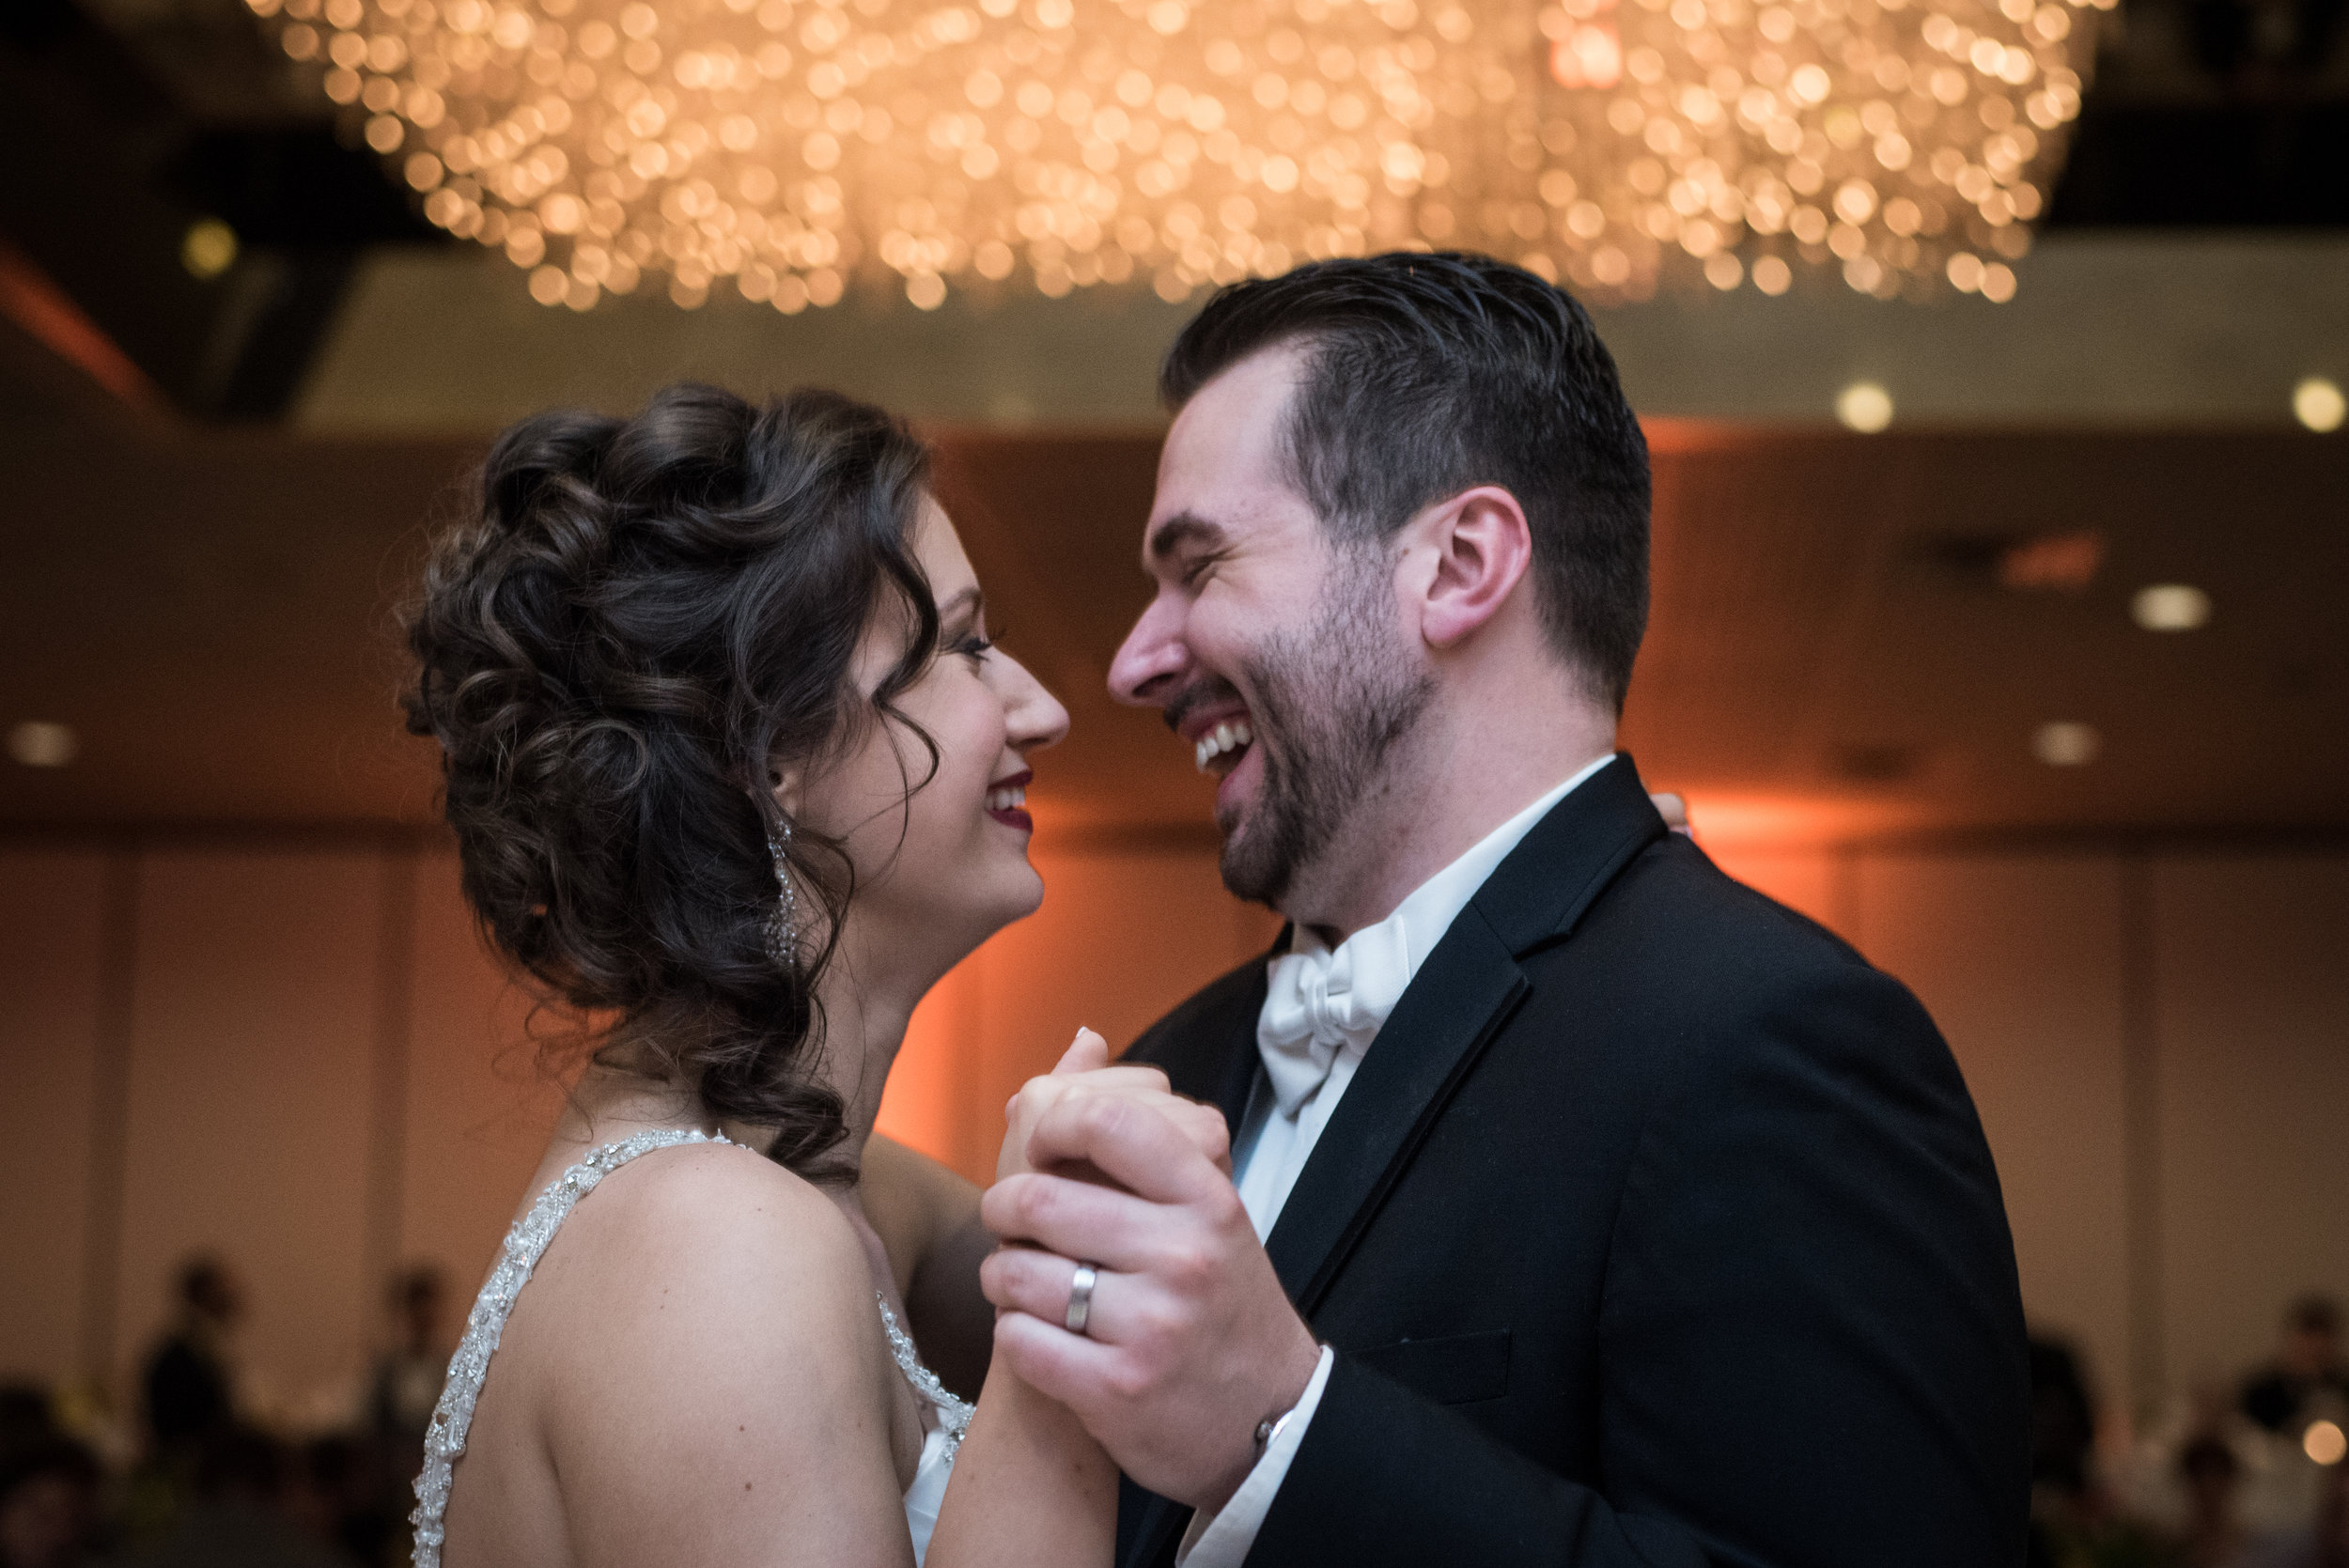 Elise + Chris - Ful Gallery